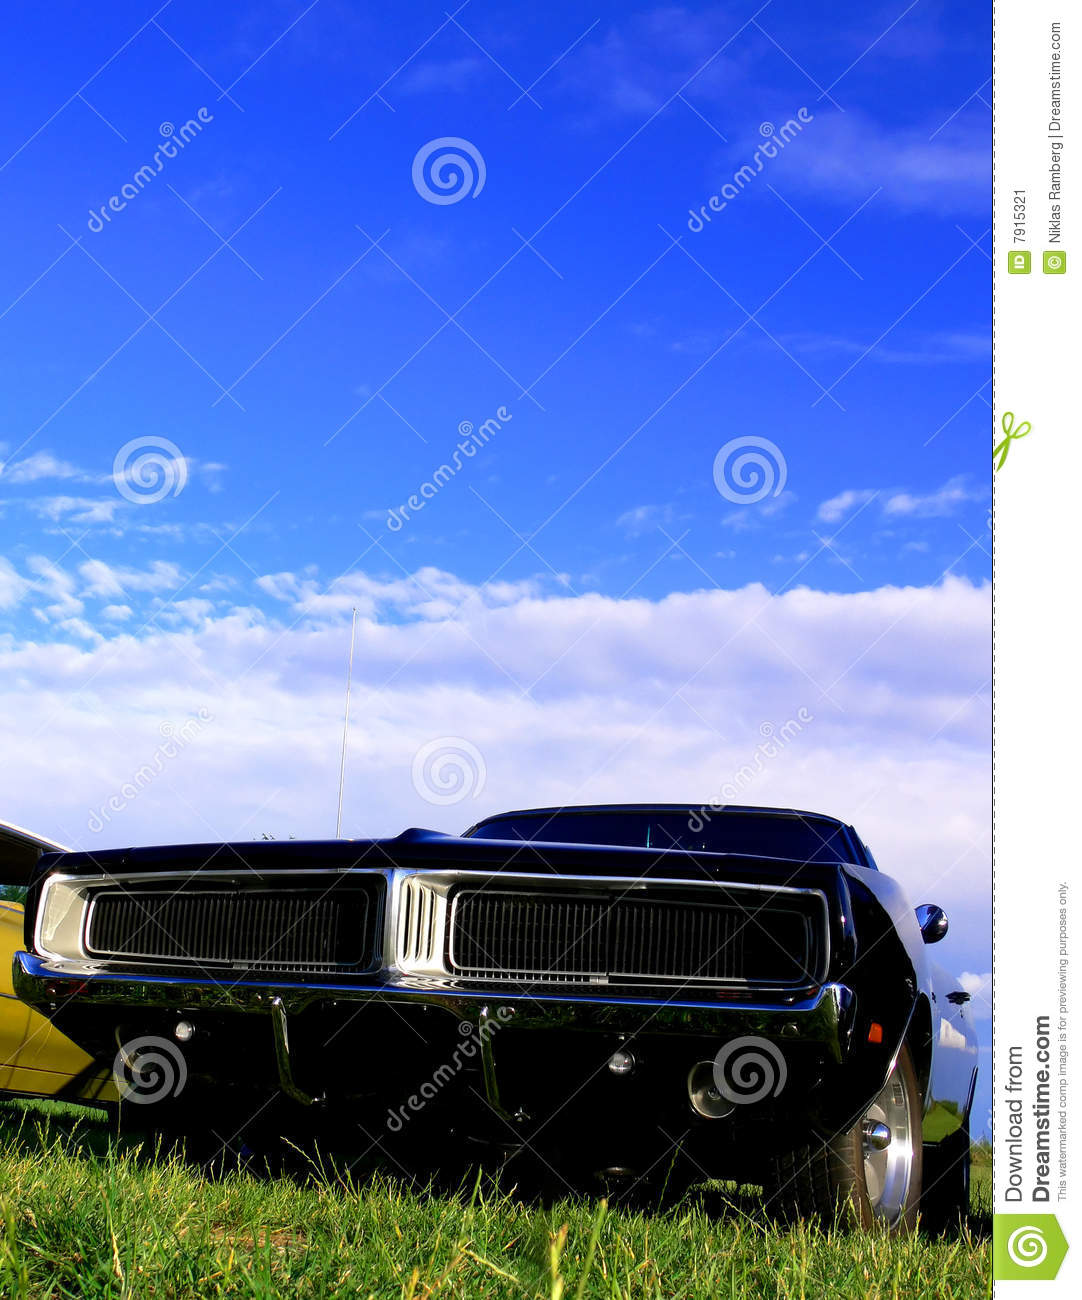 American classic car black muscle on grass stock image for American classic automotive